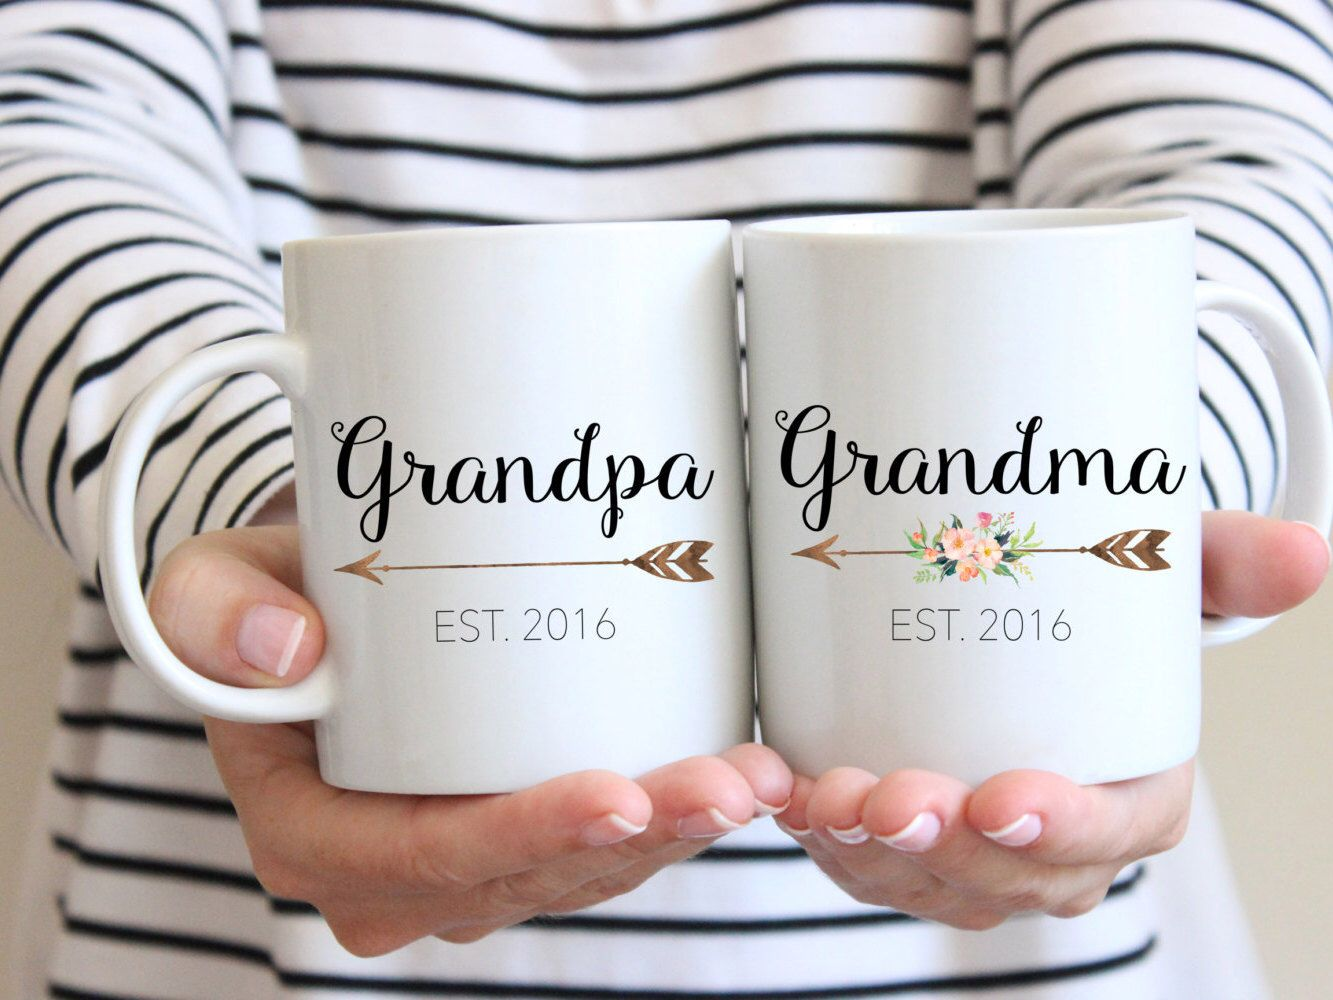 25 unique new grandparent gifts ideas on pinterest expecting gift for grandparents mug set couples mug grandma mug grandparent gift negle Gallery